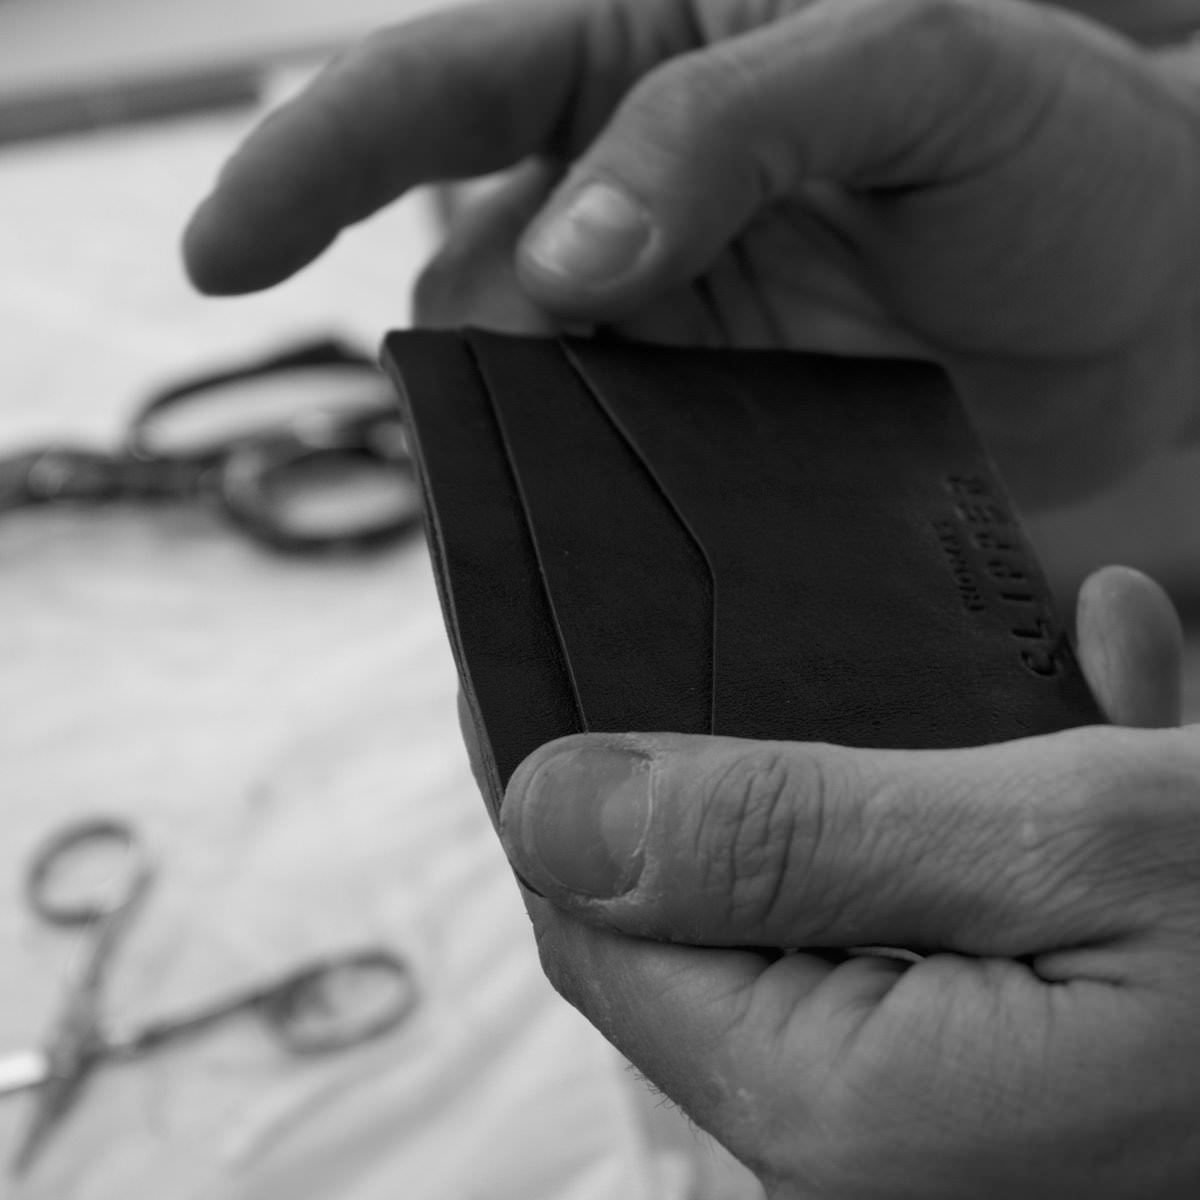 The small leather goods require an expertise that comes with decades of experience